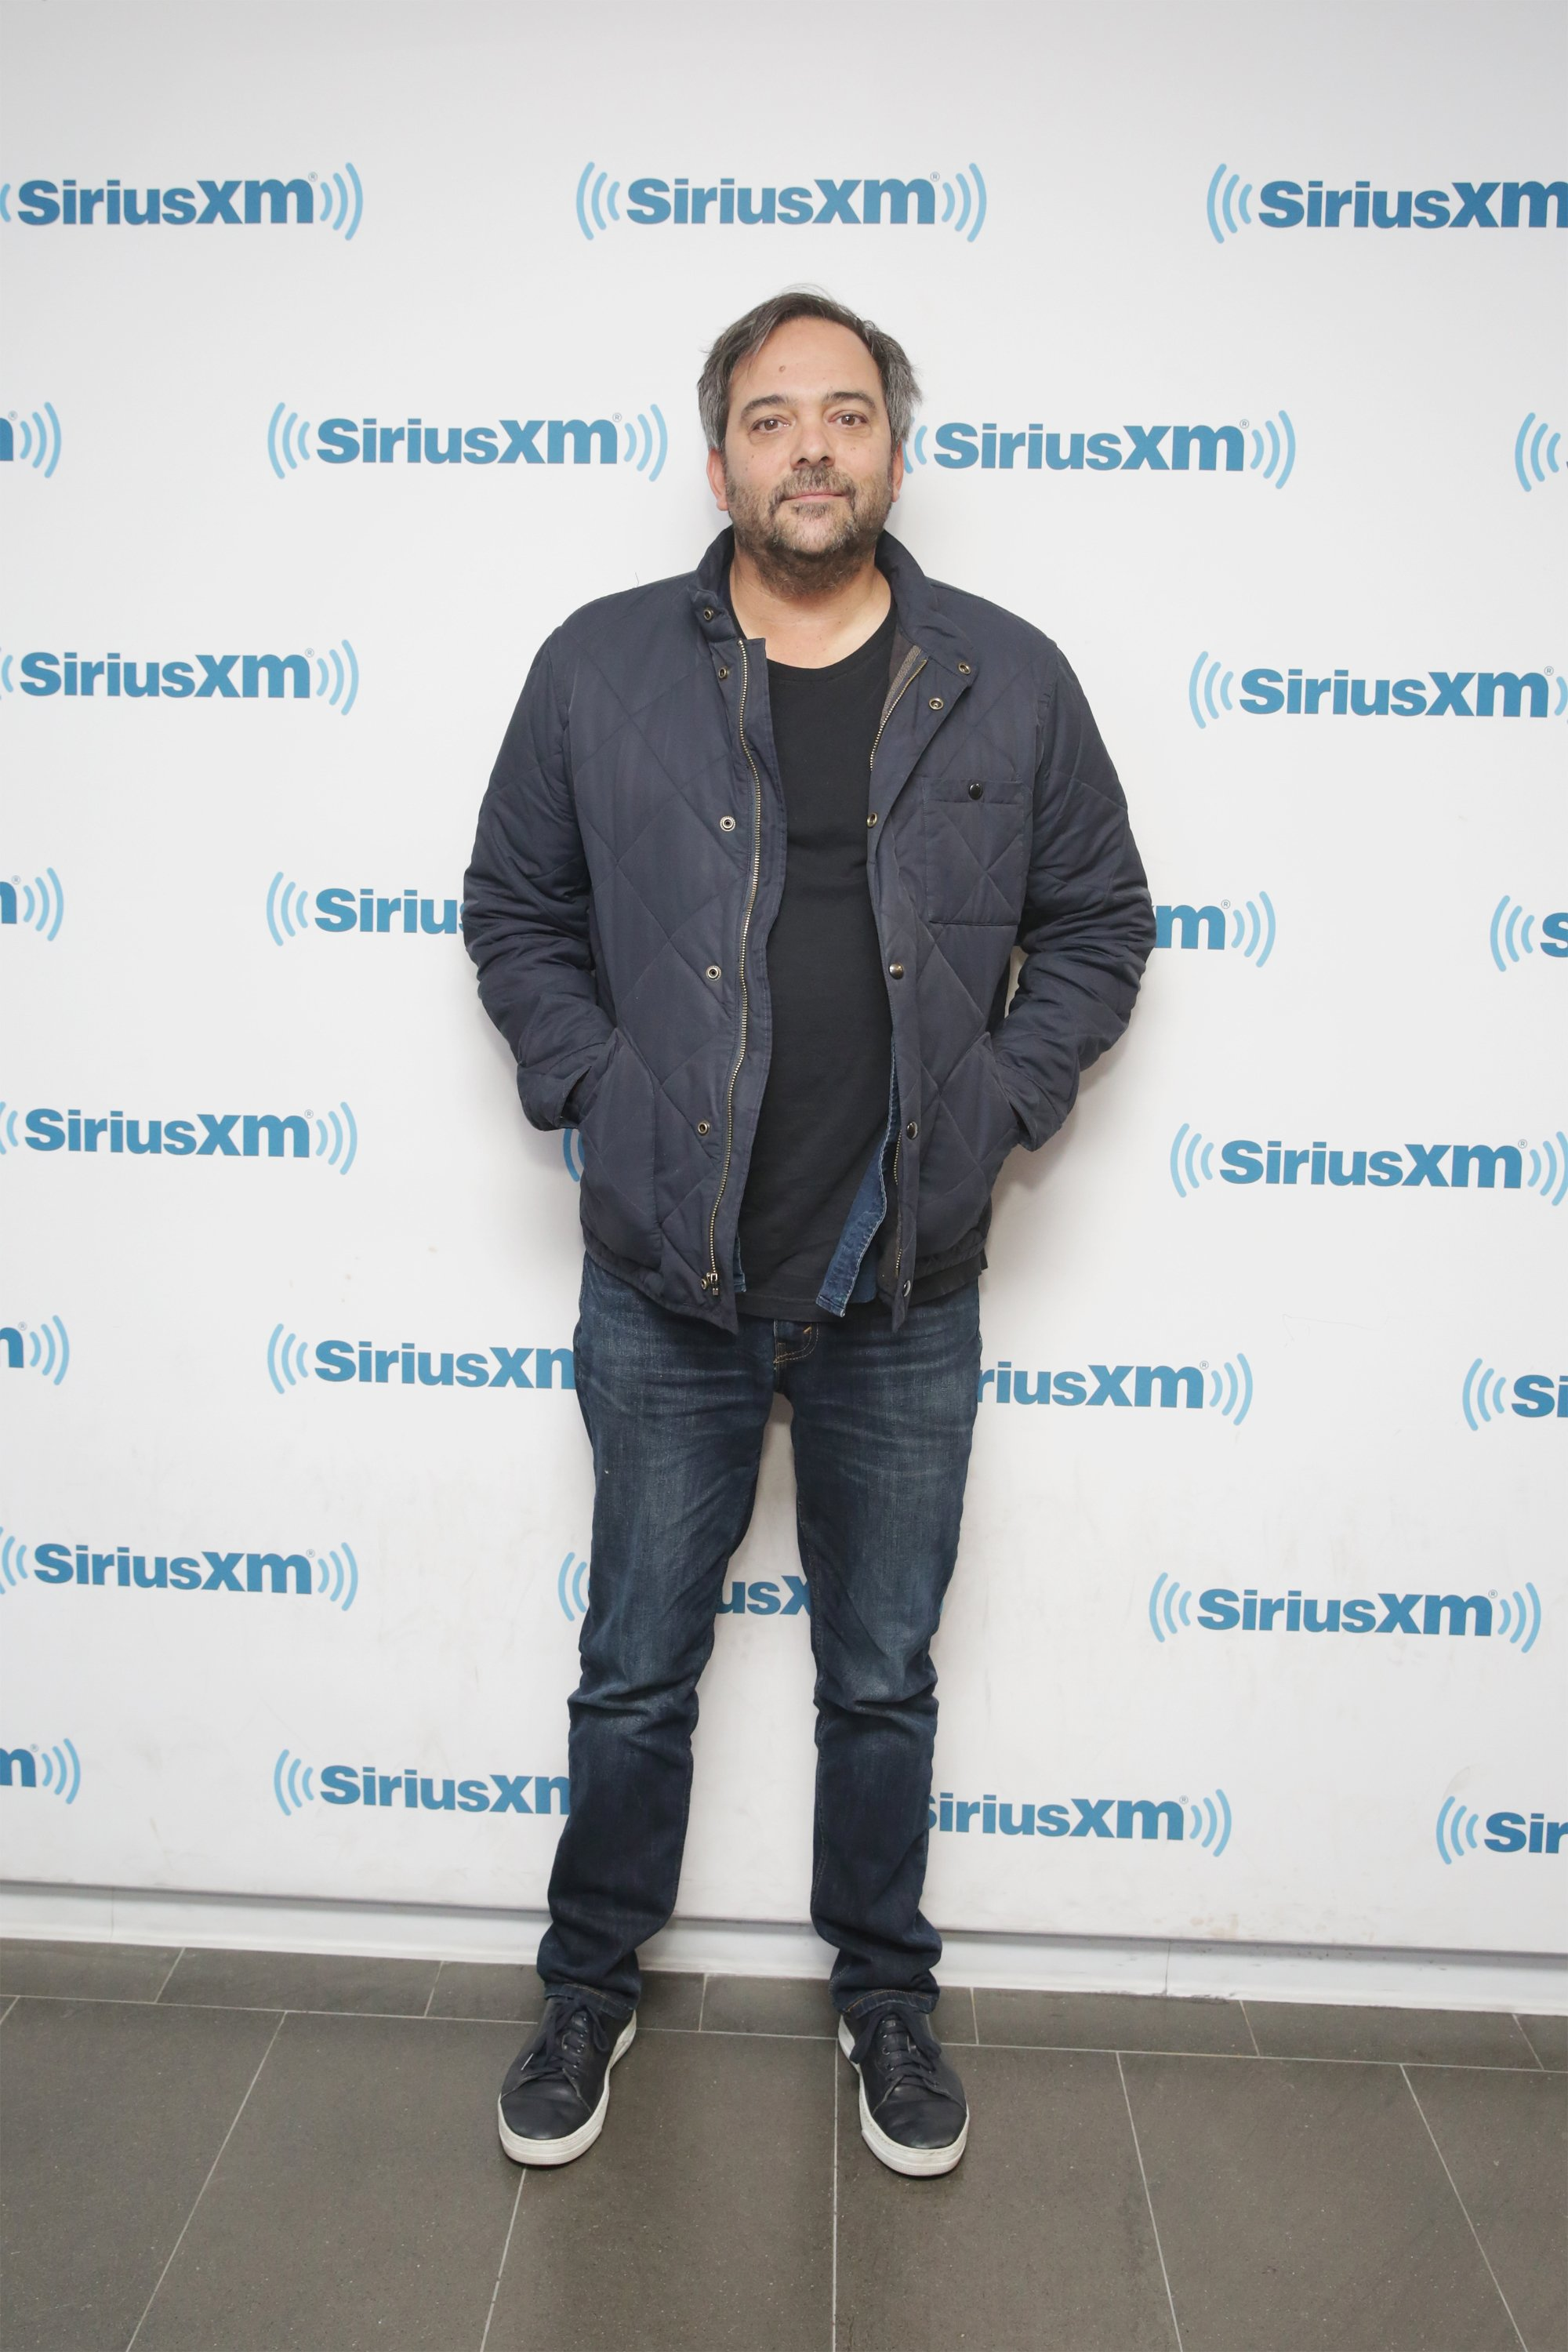 Adam Schlesinger at the SiriusXM Studios on April 19, 2018, in New York City. | Source: Getty Images.